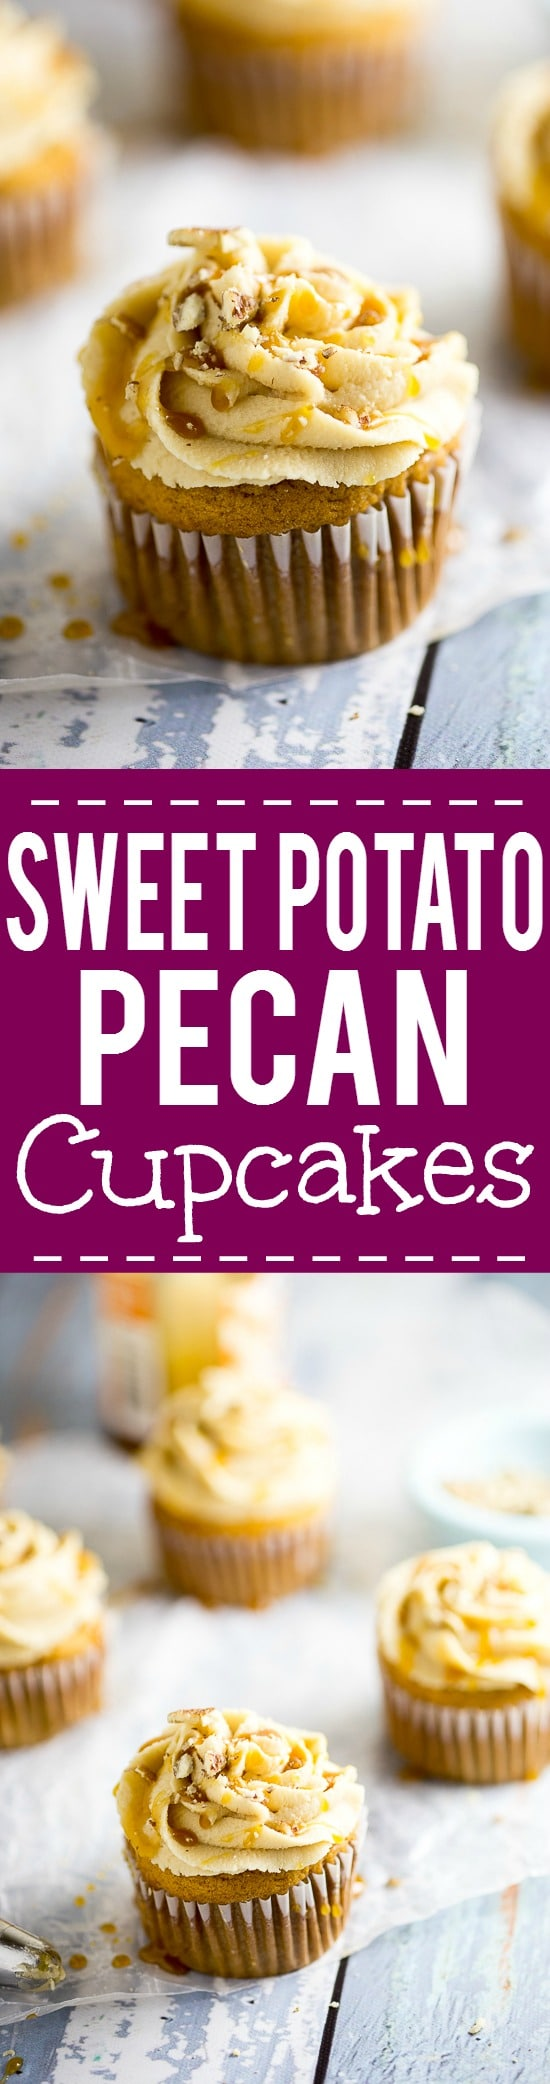 Sweet Potato Pecan Cupcakes Recipe with Caramel Frosting - Rich and moist Sweet Potato Pecan Cupcakes are topped with a sweet caramel frosting. These festive cupcakes have all your favorite Fall flavors and would be a delicious non-pie addition to your Thanksgiving dessert table.